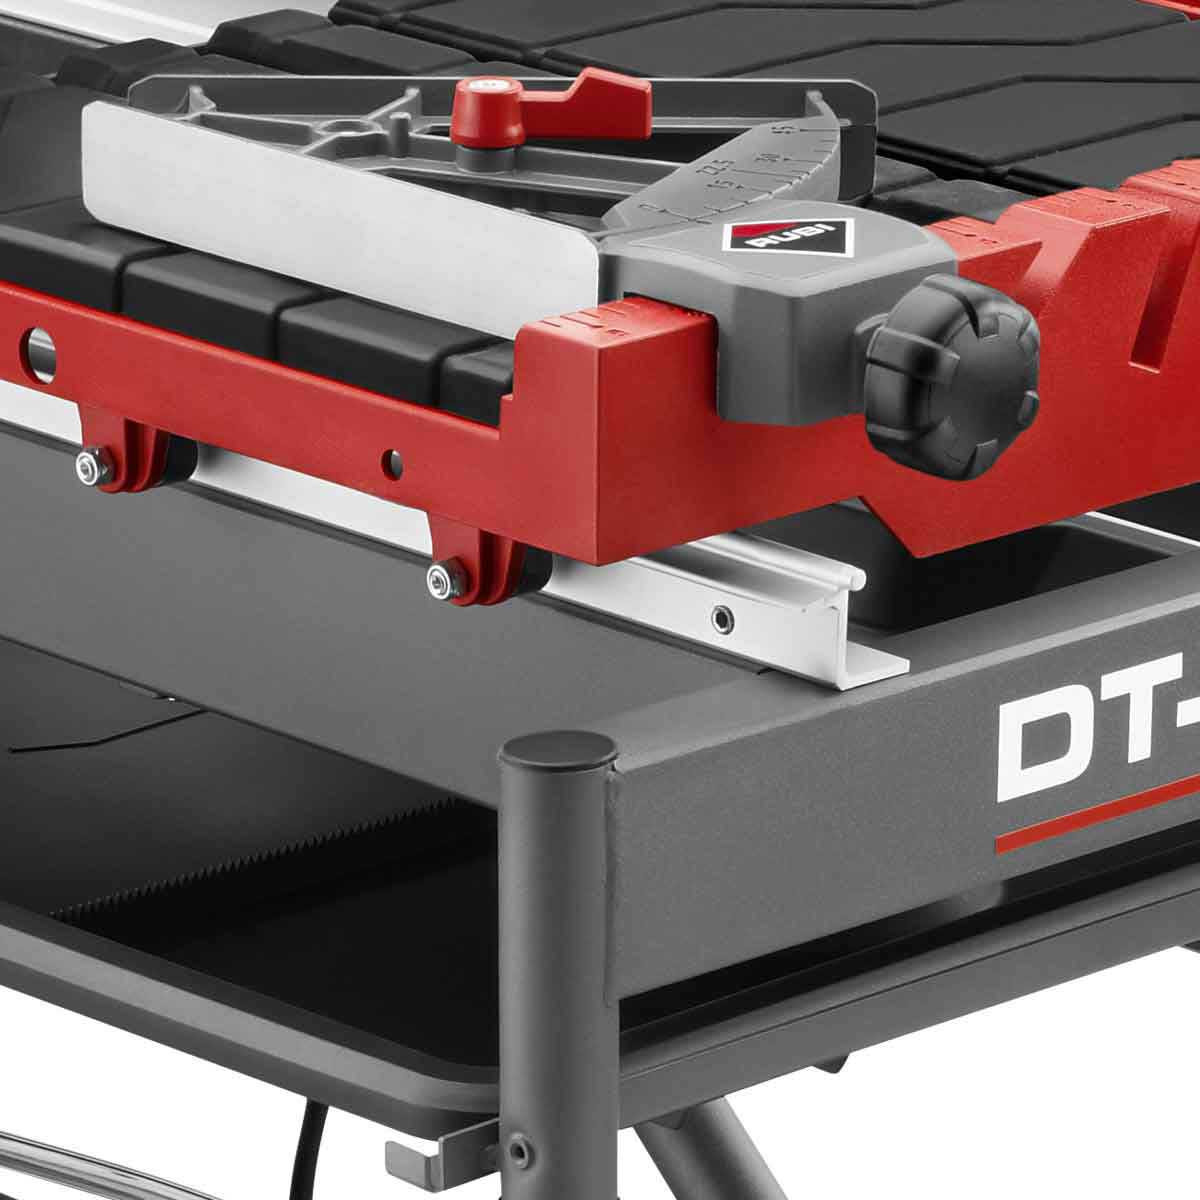 Rubi Wet Tile saw stand